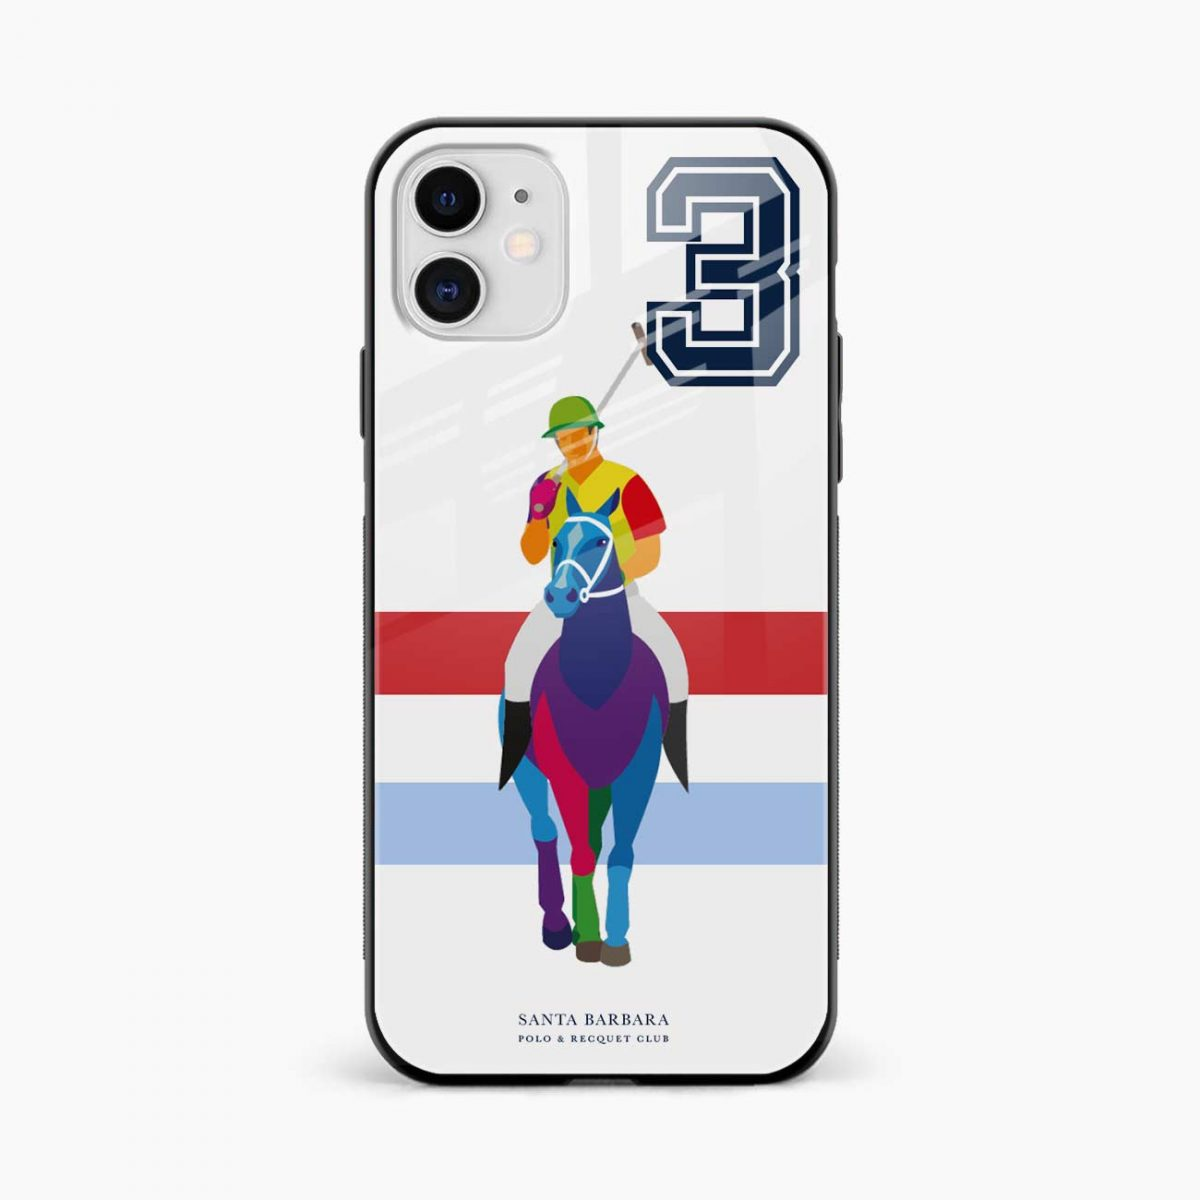 multicolor sant barbara polo iphone back cover front view